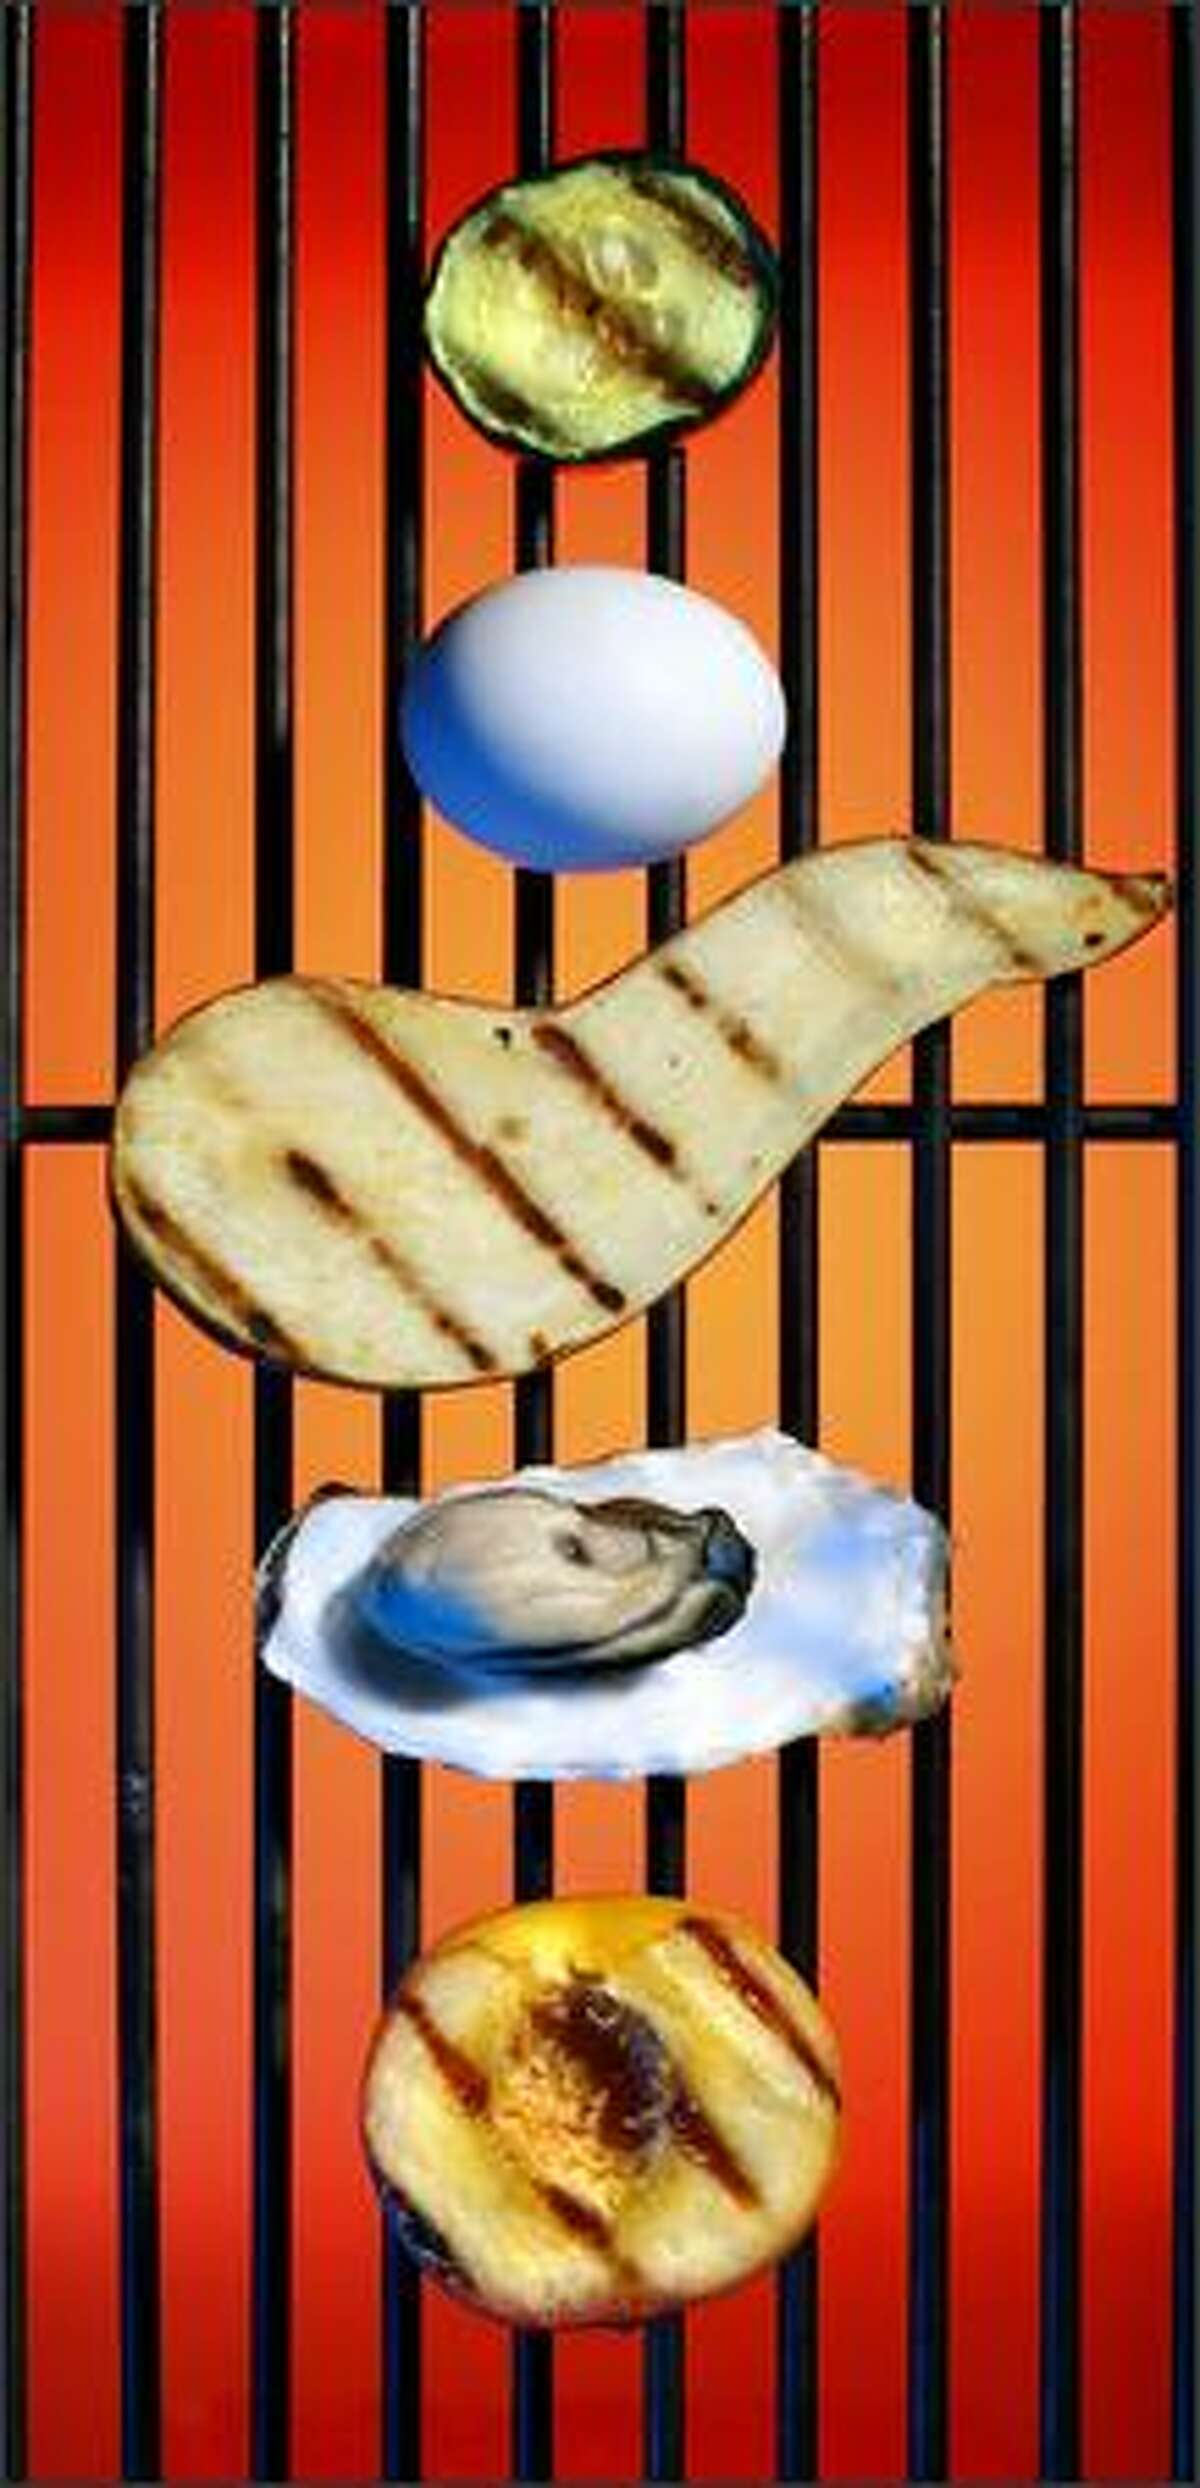 Grilling can be a delicious way to prepare food that is normally cooked in other ways, or not at all. From top, cucumber, an egg, sweet potato, an oyster and a peach are shown after being grilled.